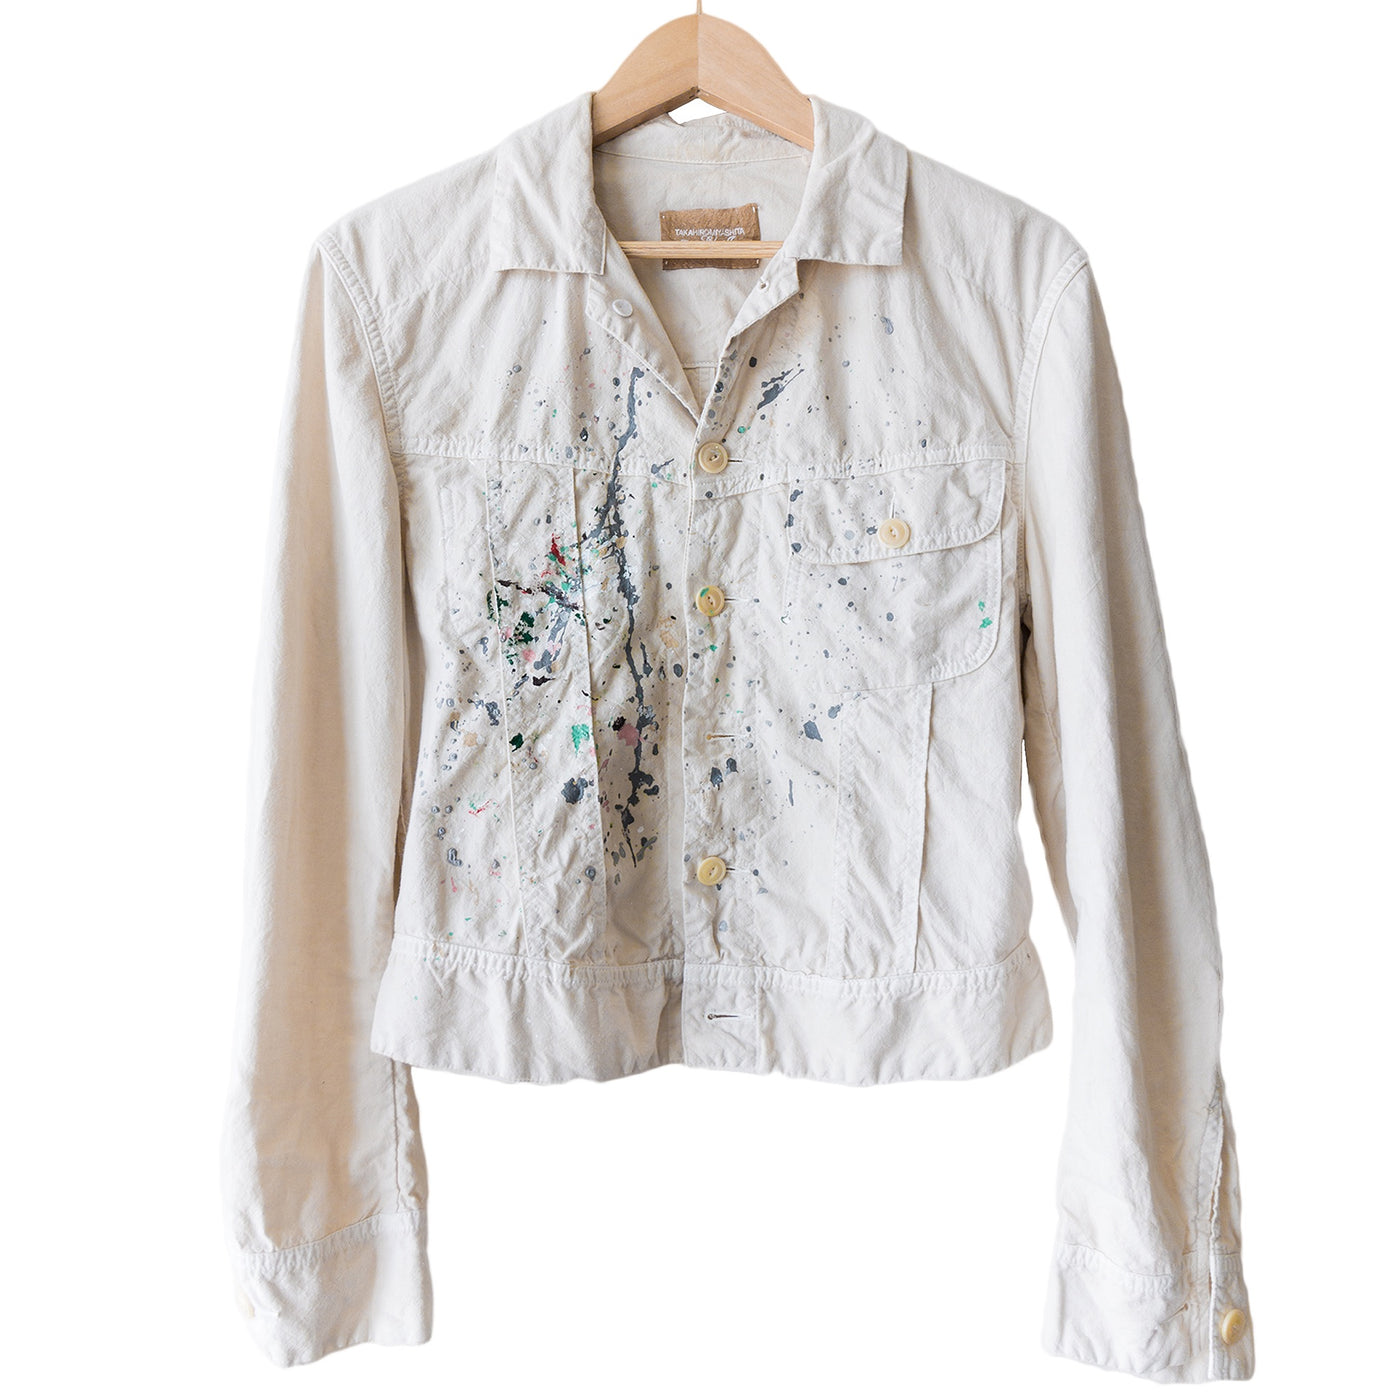 TAKAHIROMIYASHITA The Soloist Painter Jacket - SS12